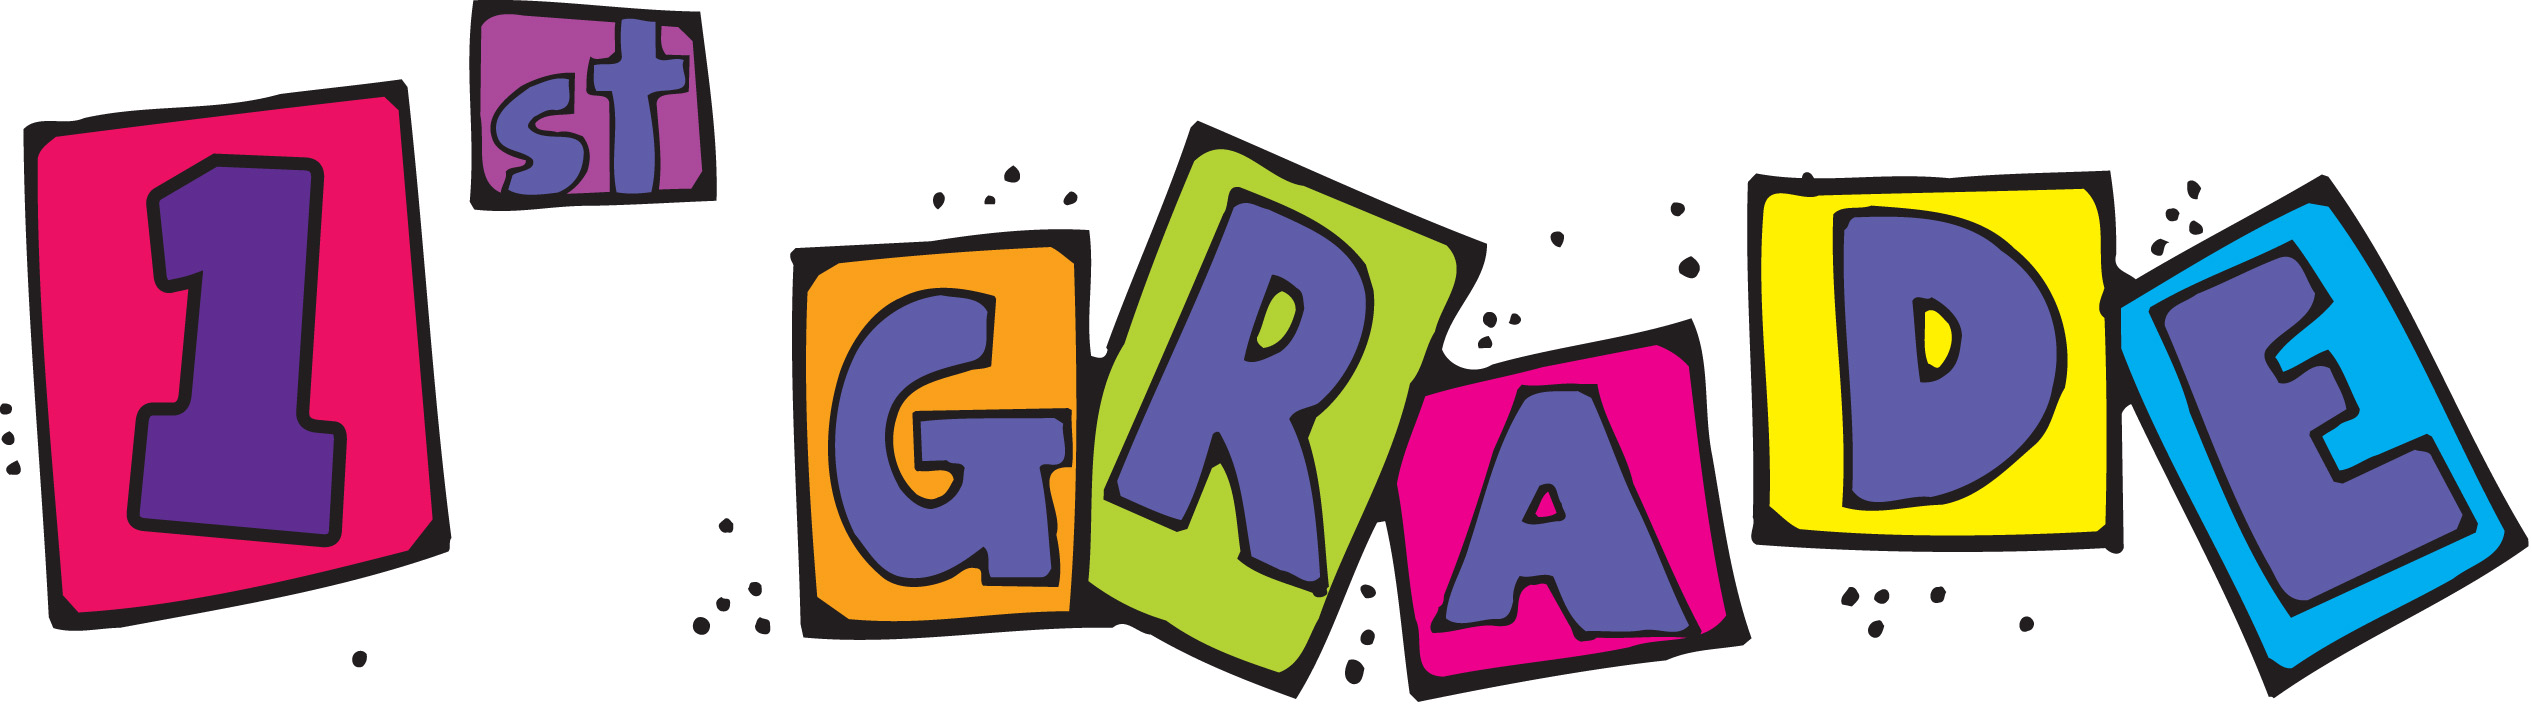 Welcome to first grade clipart png First Grade Clipart   Free download best First Grade Clipart ... png